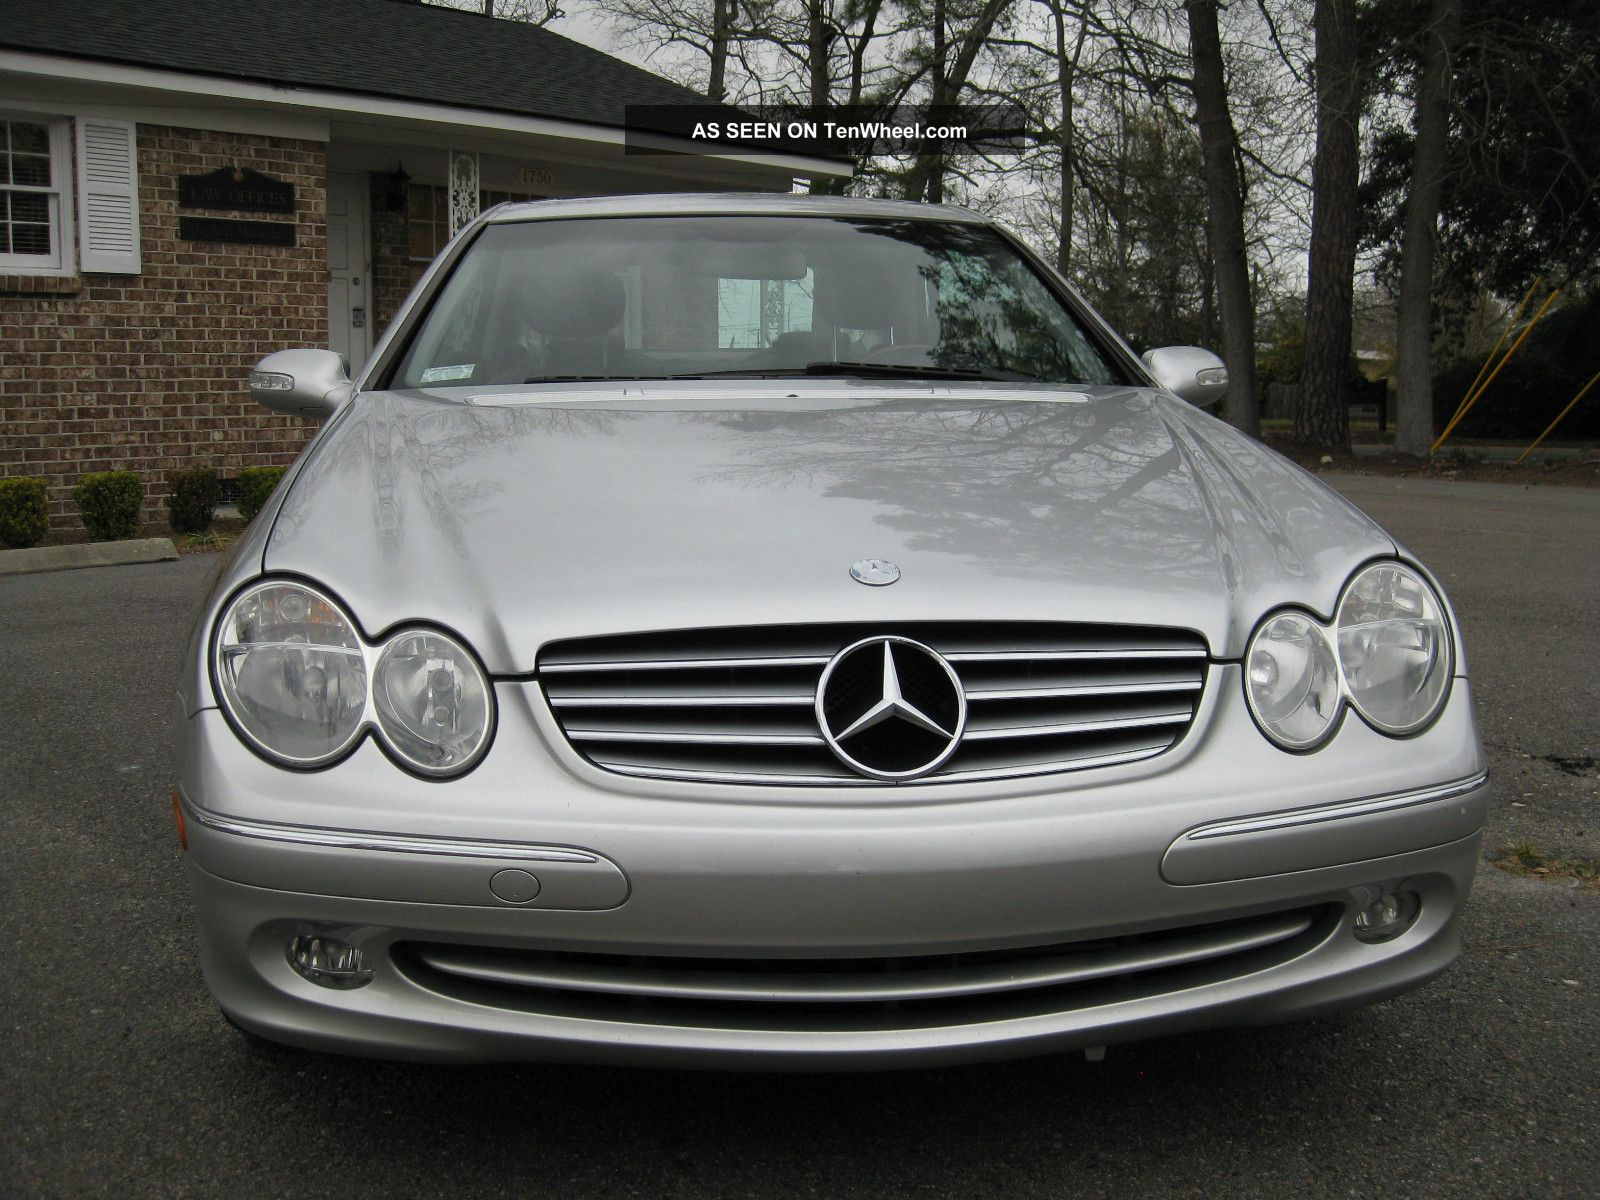 2004 mercedes benz clk 320 for Mercedes benz clk